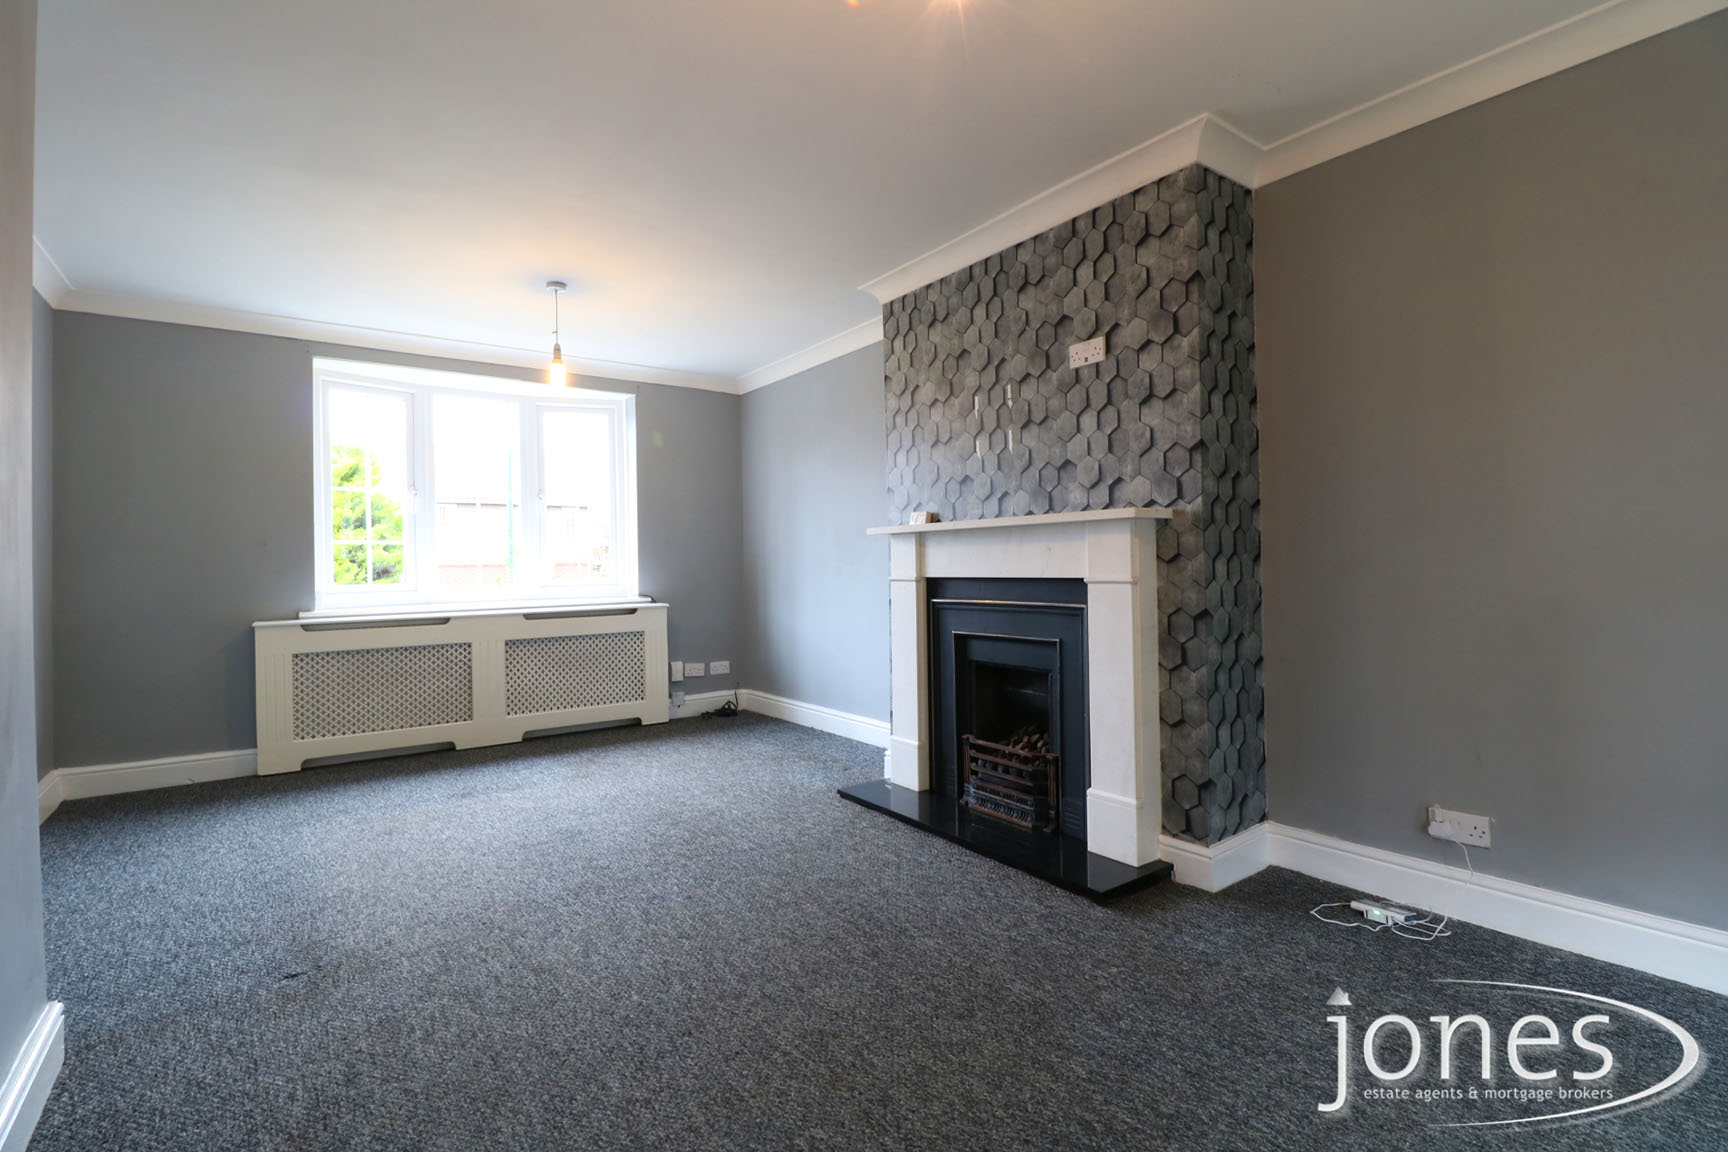 Home for Sale Let - Photo 02 Keats Road, Normanby, Middlesbrough, TS6 0RP